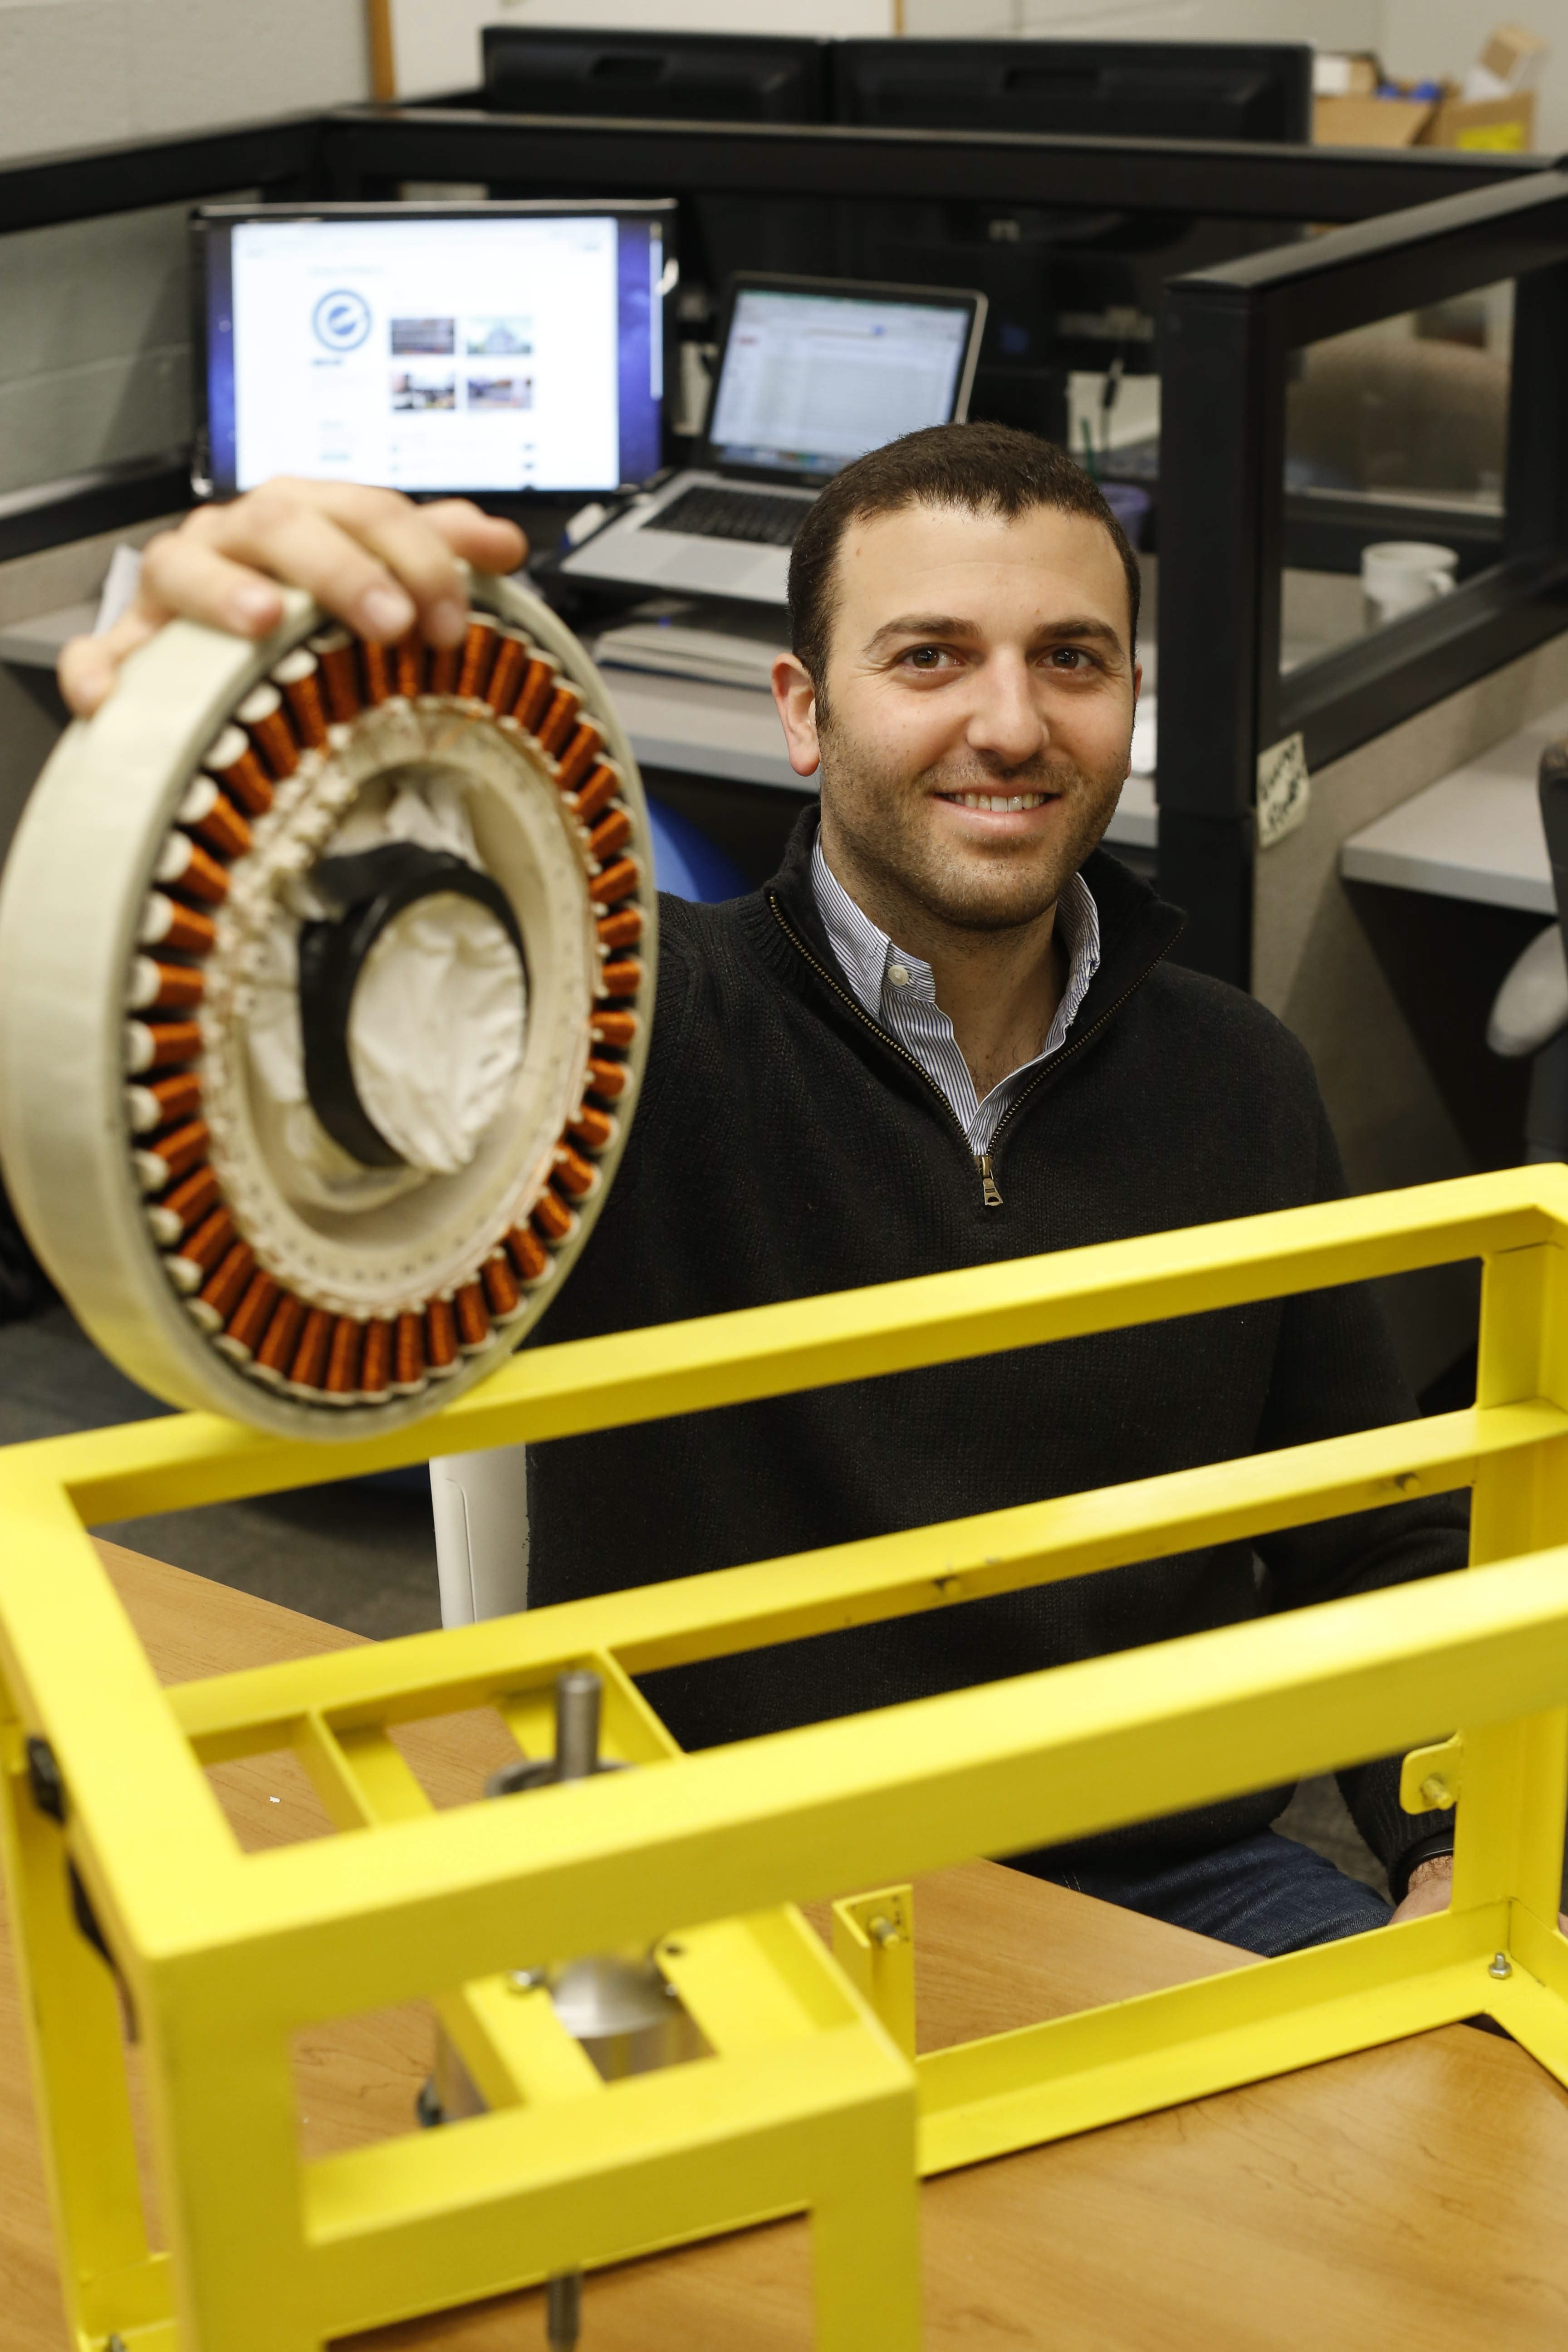 Daniel Shani, founder and CEO of Energy Intelligence, a startup company developing a device which uses the energy of passing cars (as they drive over a pressure sensitive pad or series of pads on the road) to create electricity, in his workspace at 43 North, Wednesday, March 23, 2016.  He's holding a generator used to power a prototype device and the frame used in testing and development.  (Derek Gee/Buffalo News)